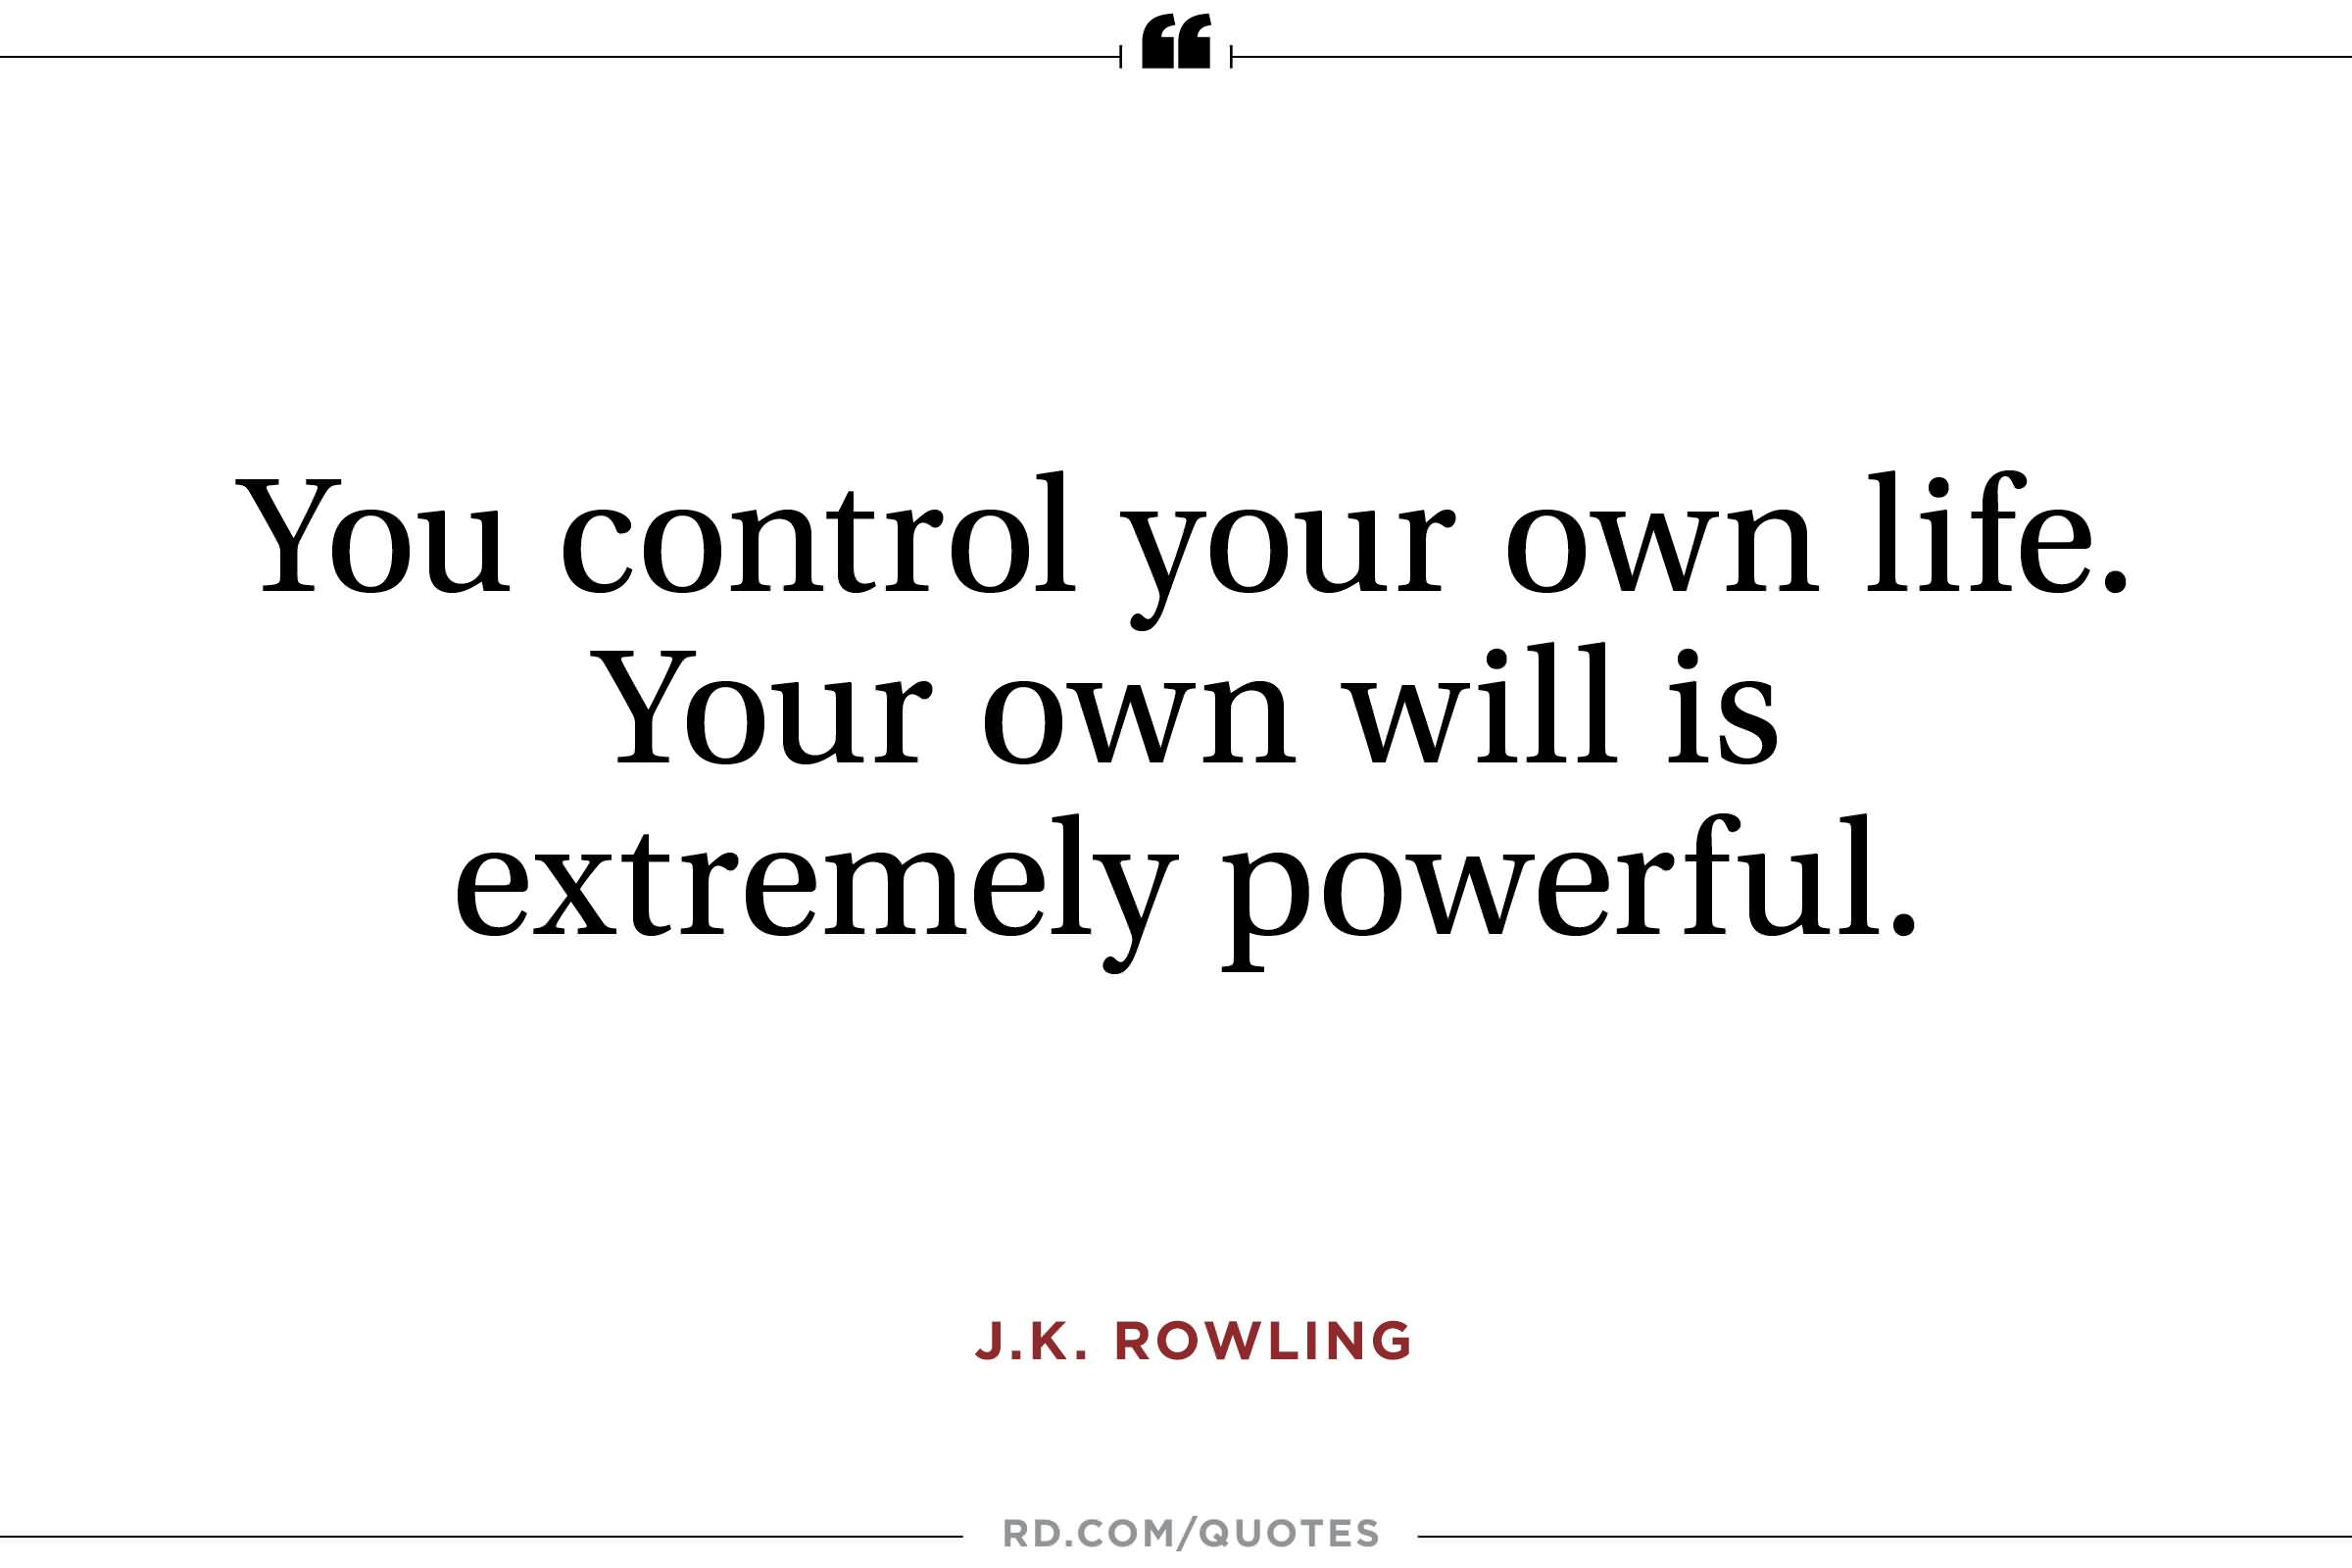 Latest J K Rowling Quotes